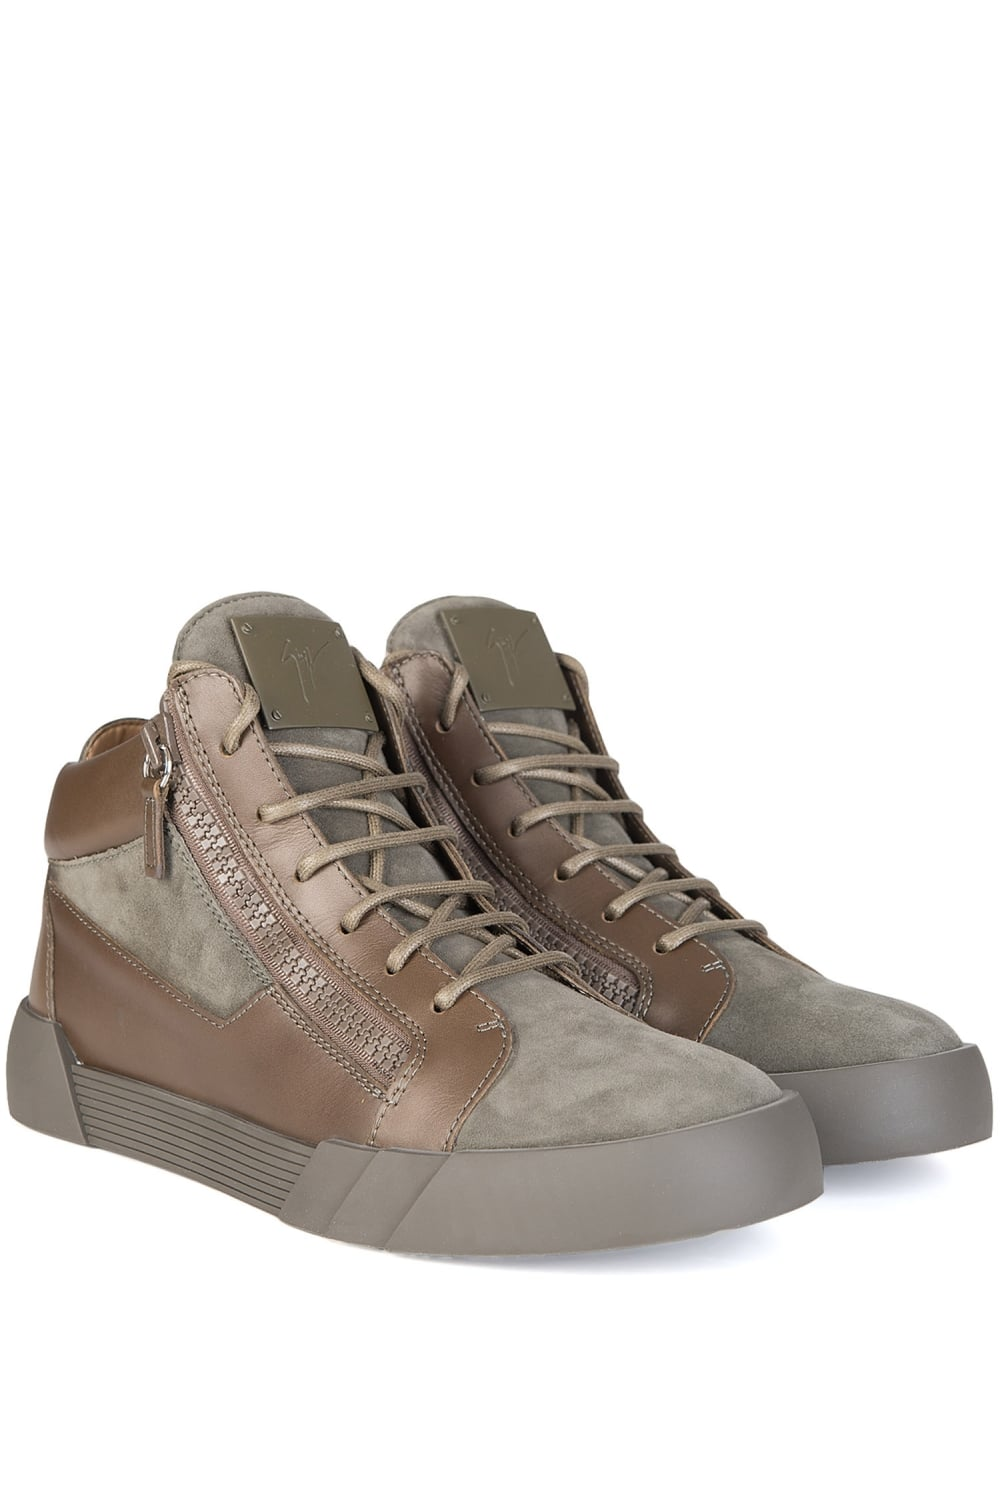 c046fb0d6aba1 Guiseppe Zanotti Mid Shark Suede/Leather Trainer